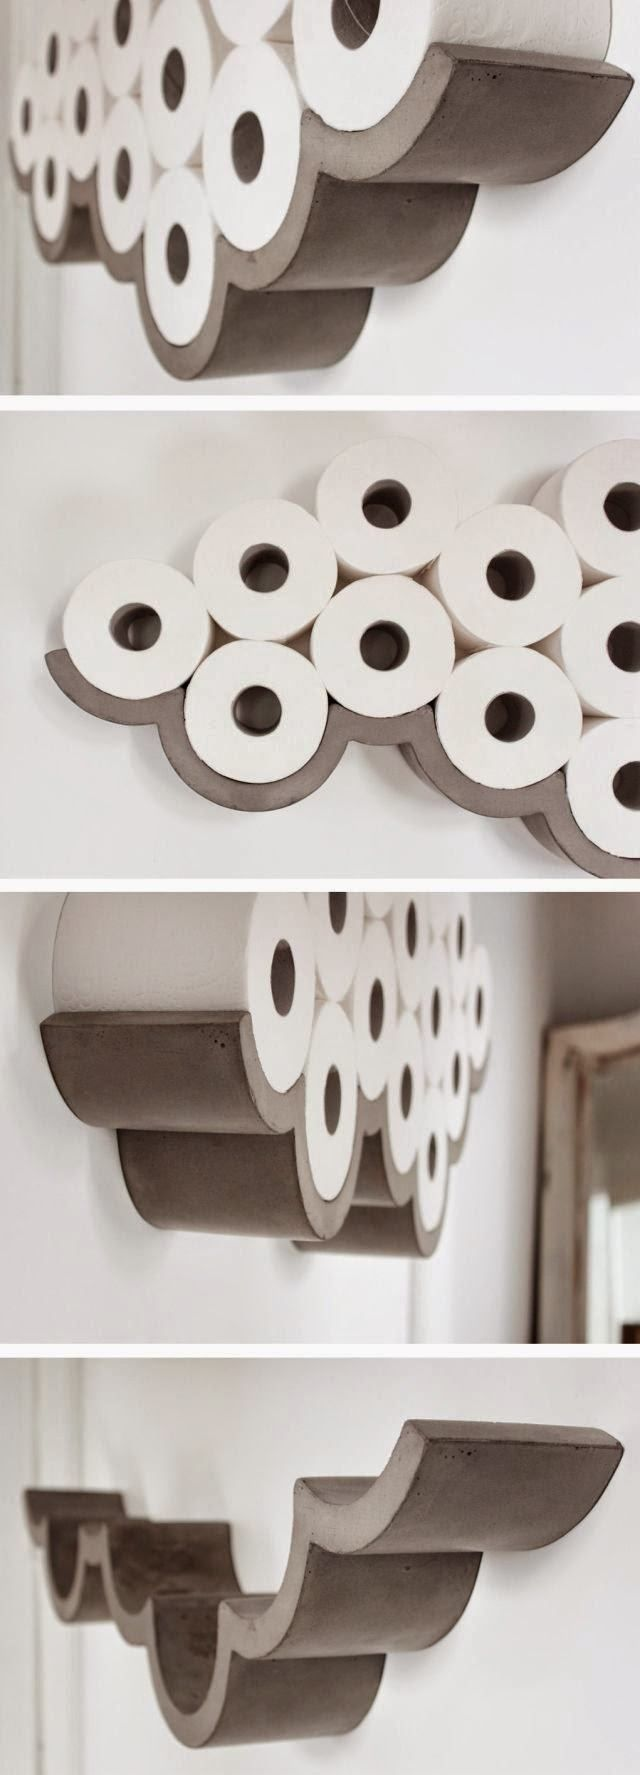 22 Diy Bathroom Decoration Ideas Live